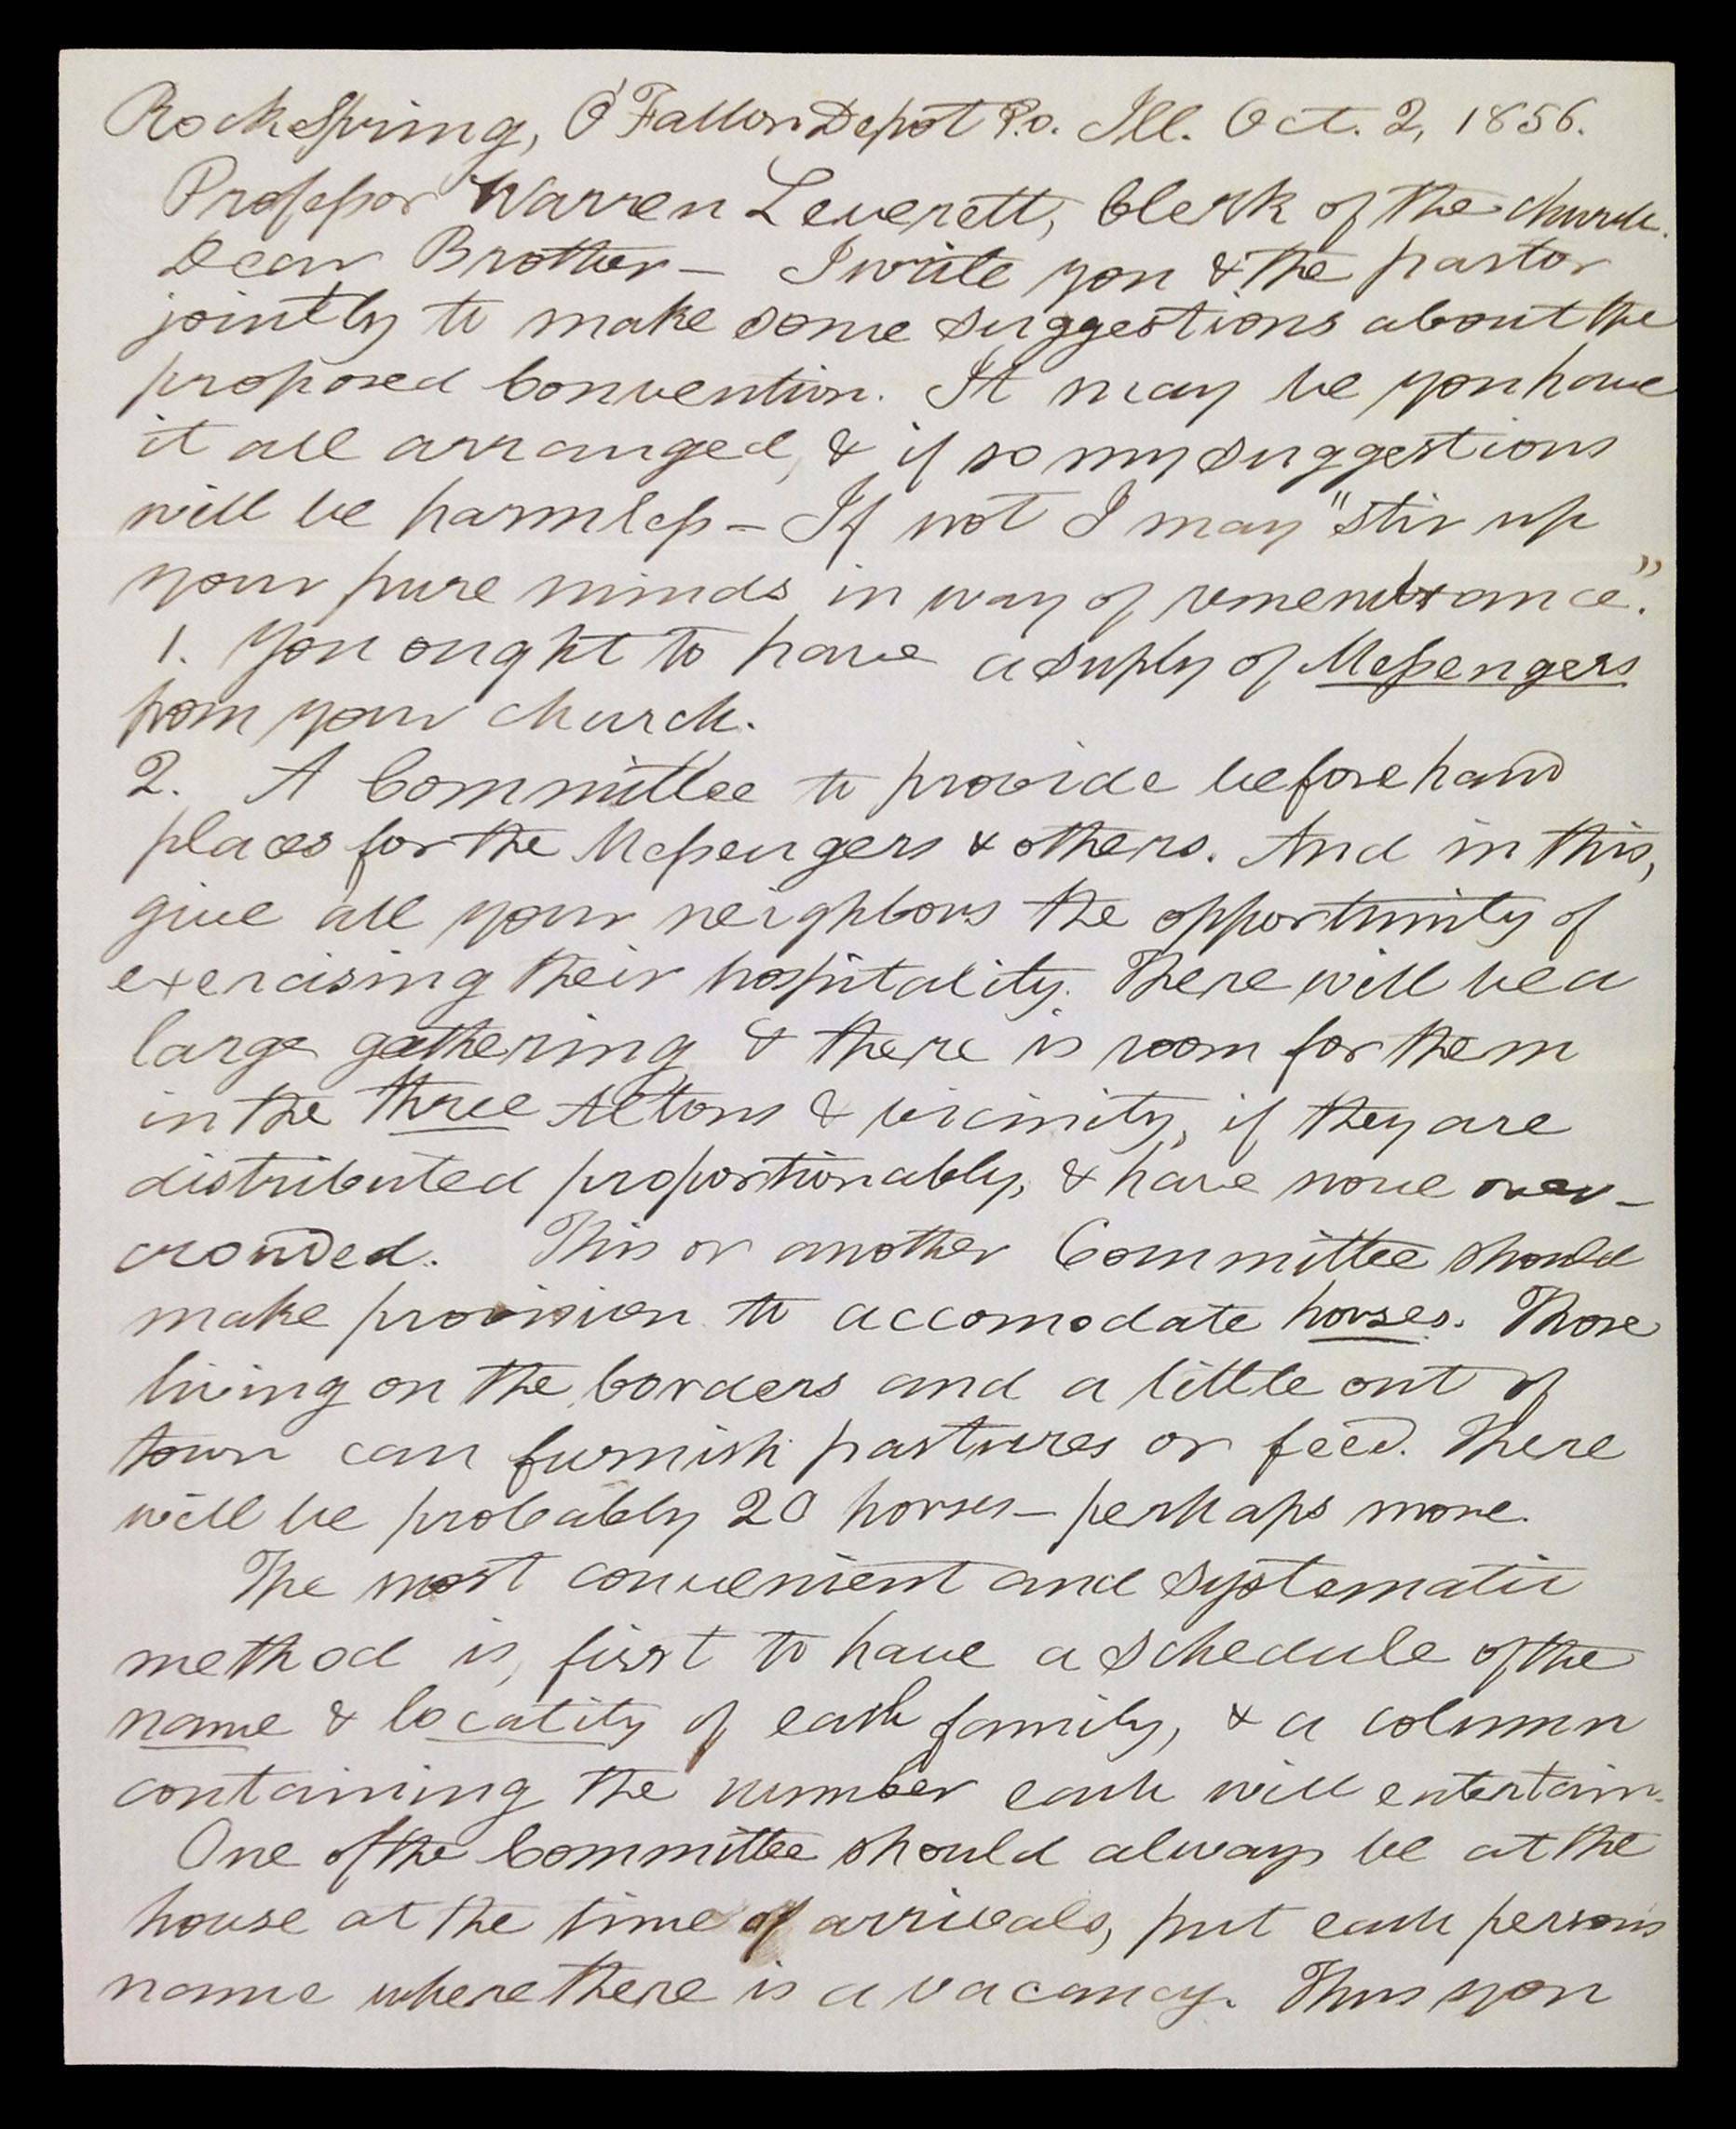 Letter from John Mason Peck to Warren Leverett, 1856.